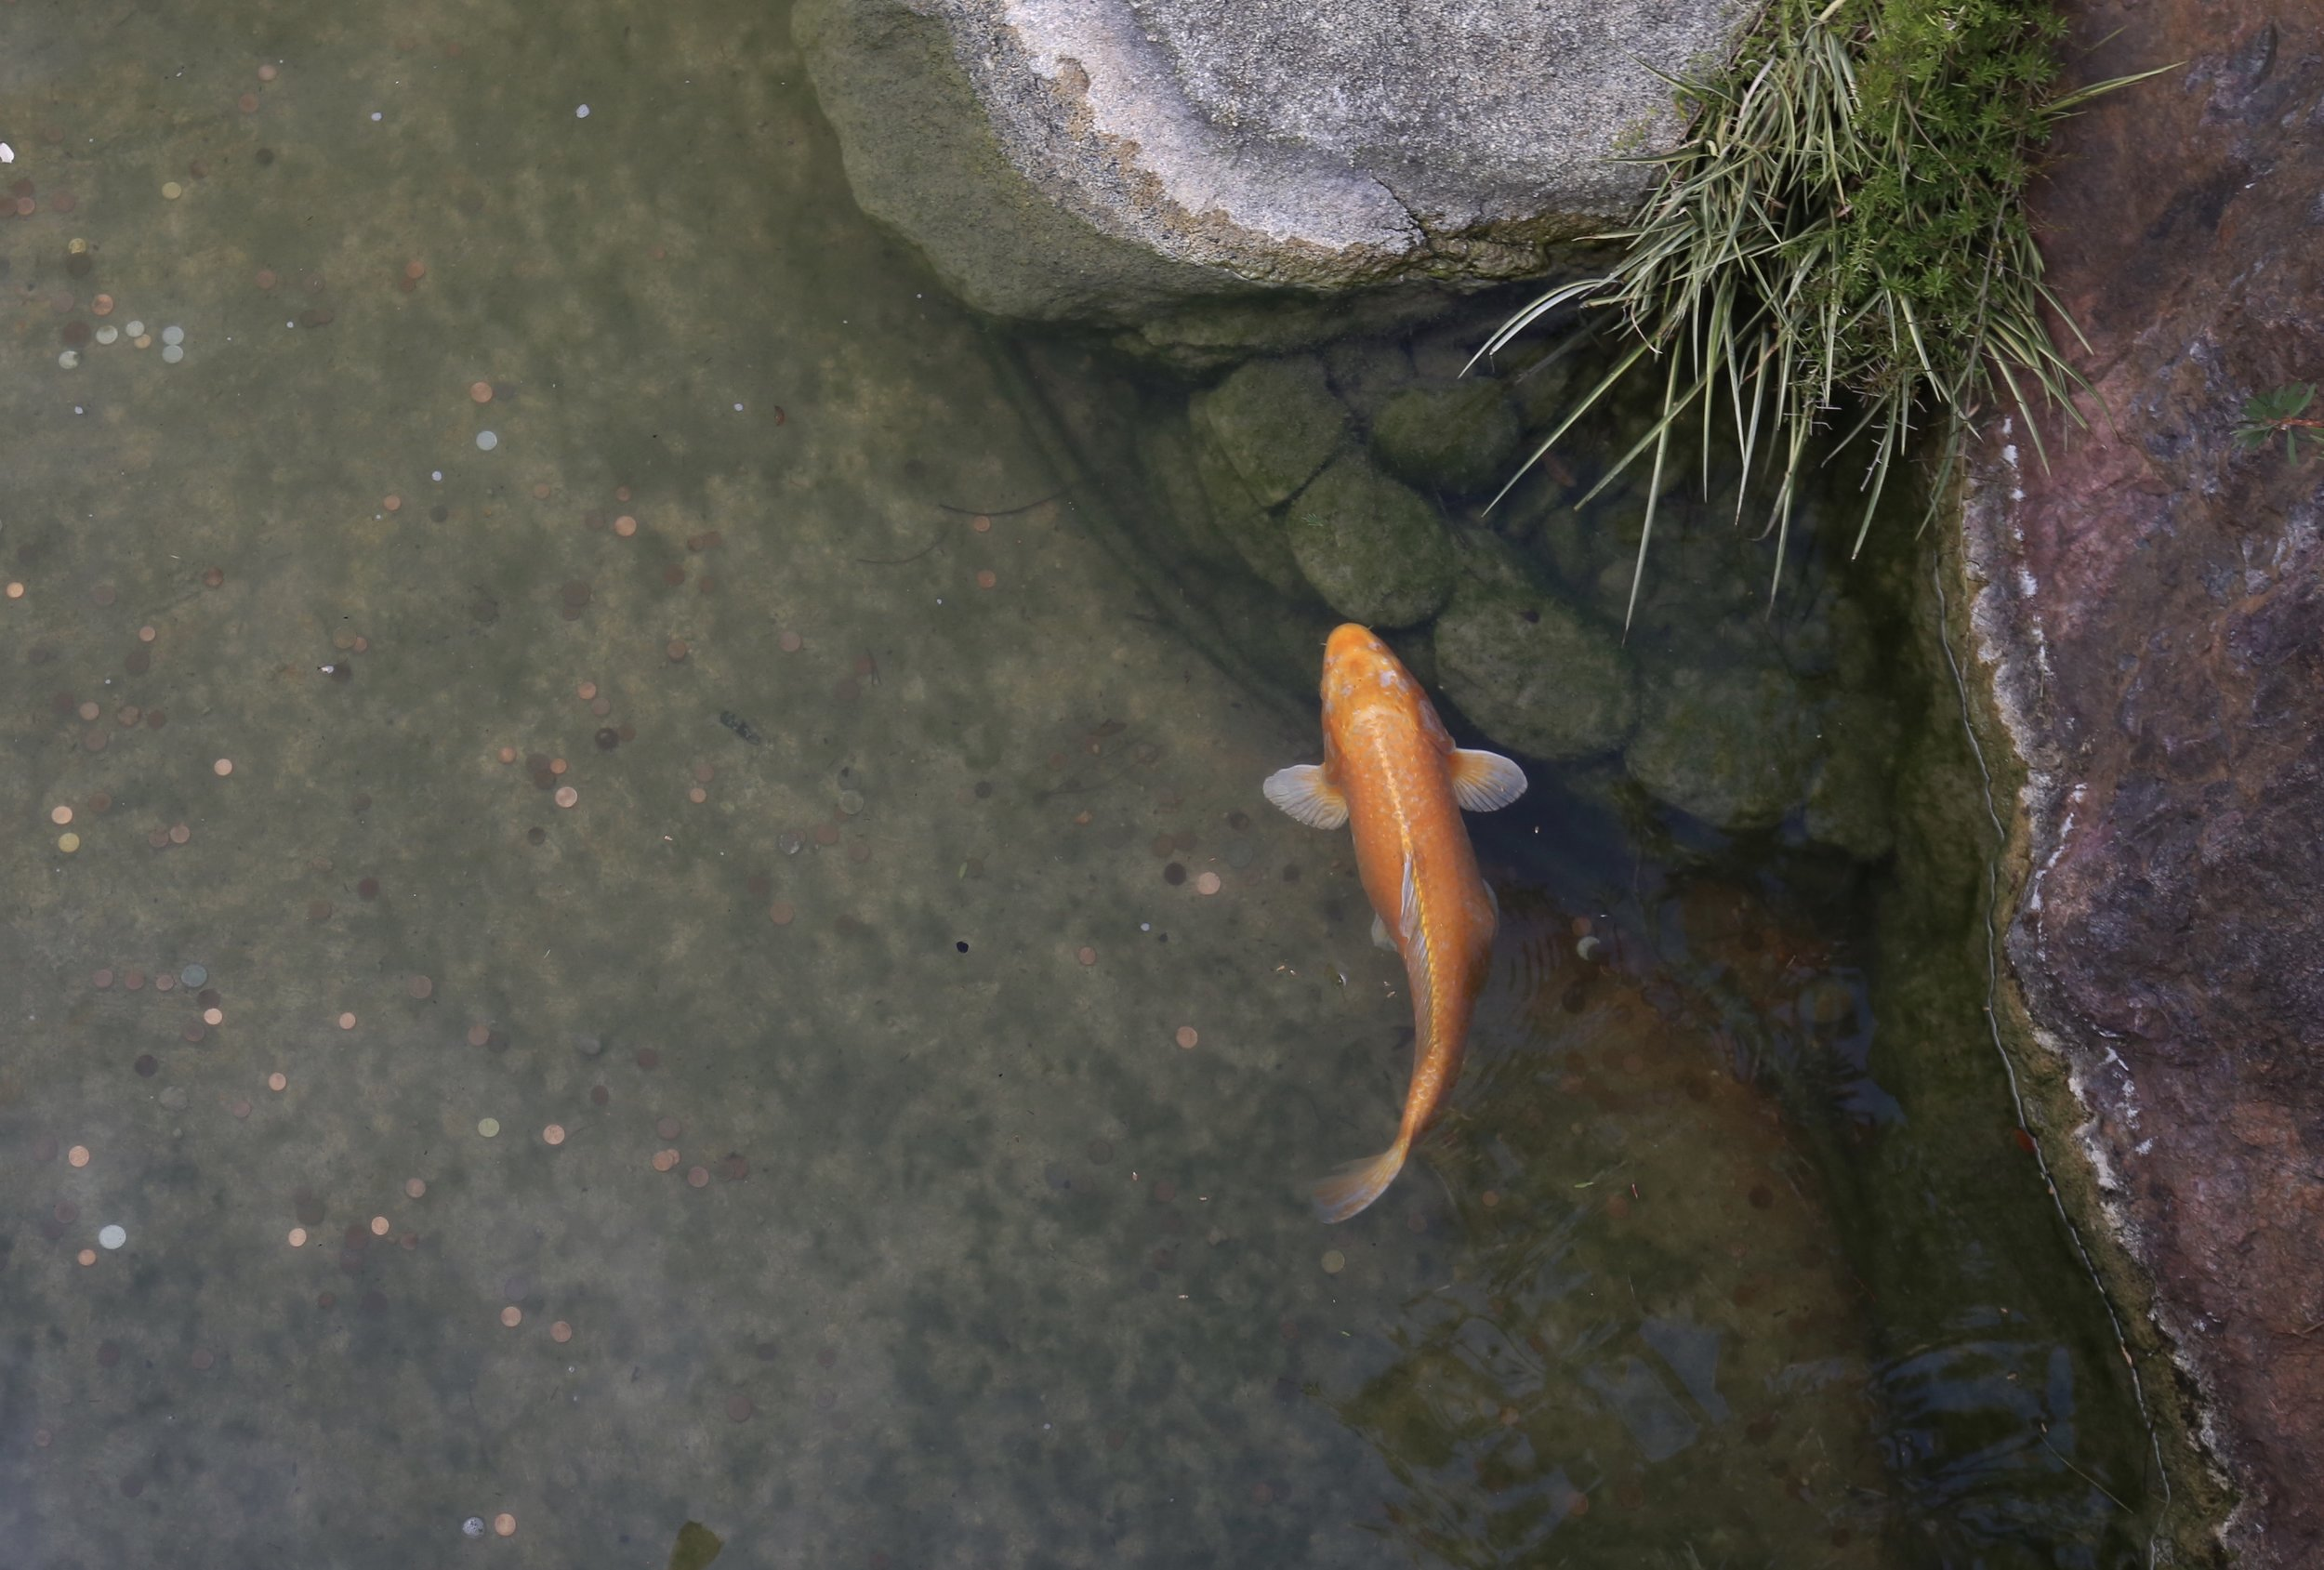 A koi fish in a pond, with rocks and coins. Zen image.